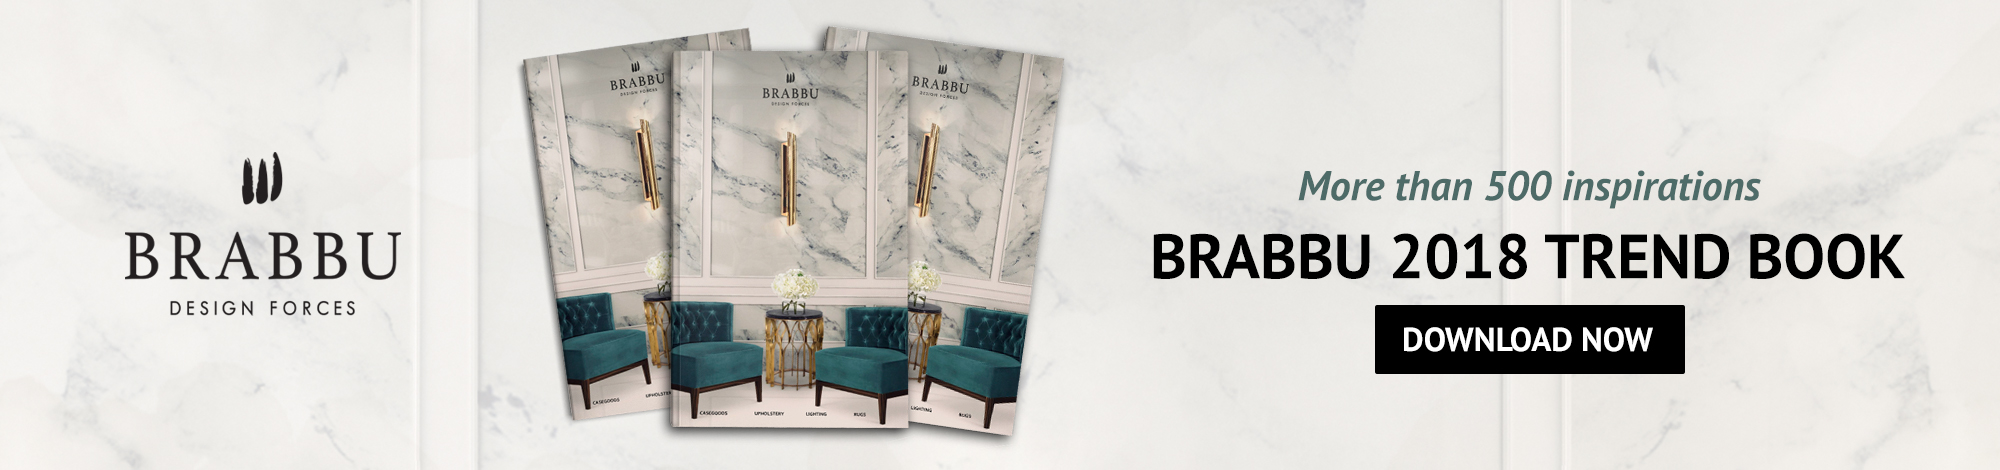 BRABBU Catalogue paris design week Paris Design Week: Top 10 Finalists of the Rado Star Prize Contest  1C5EB82328DCFD5BD10428DB124BD945082C079483CACCDD2D pimgpsh fullsize distr